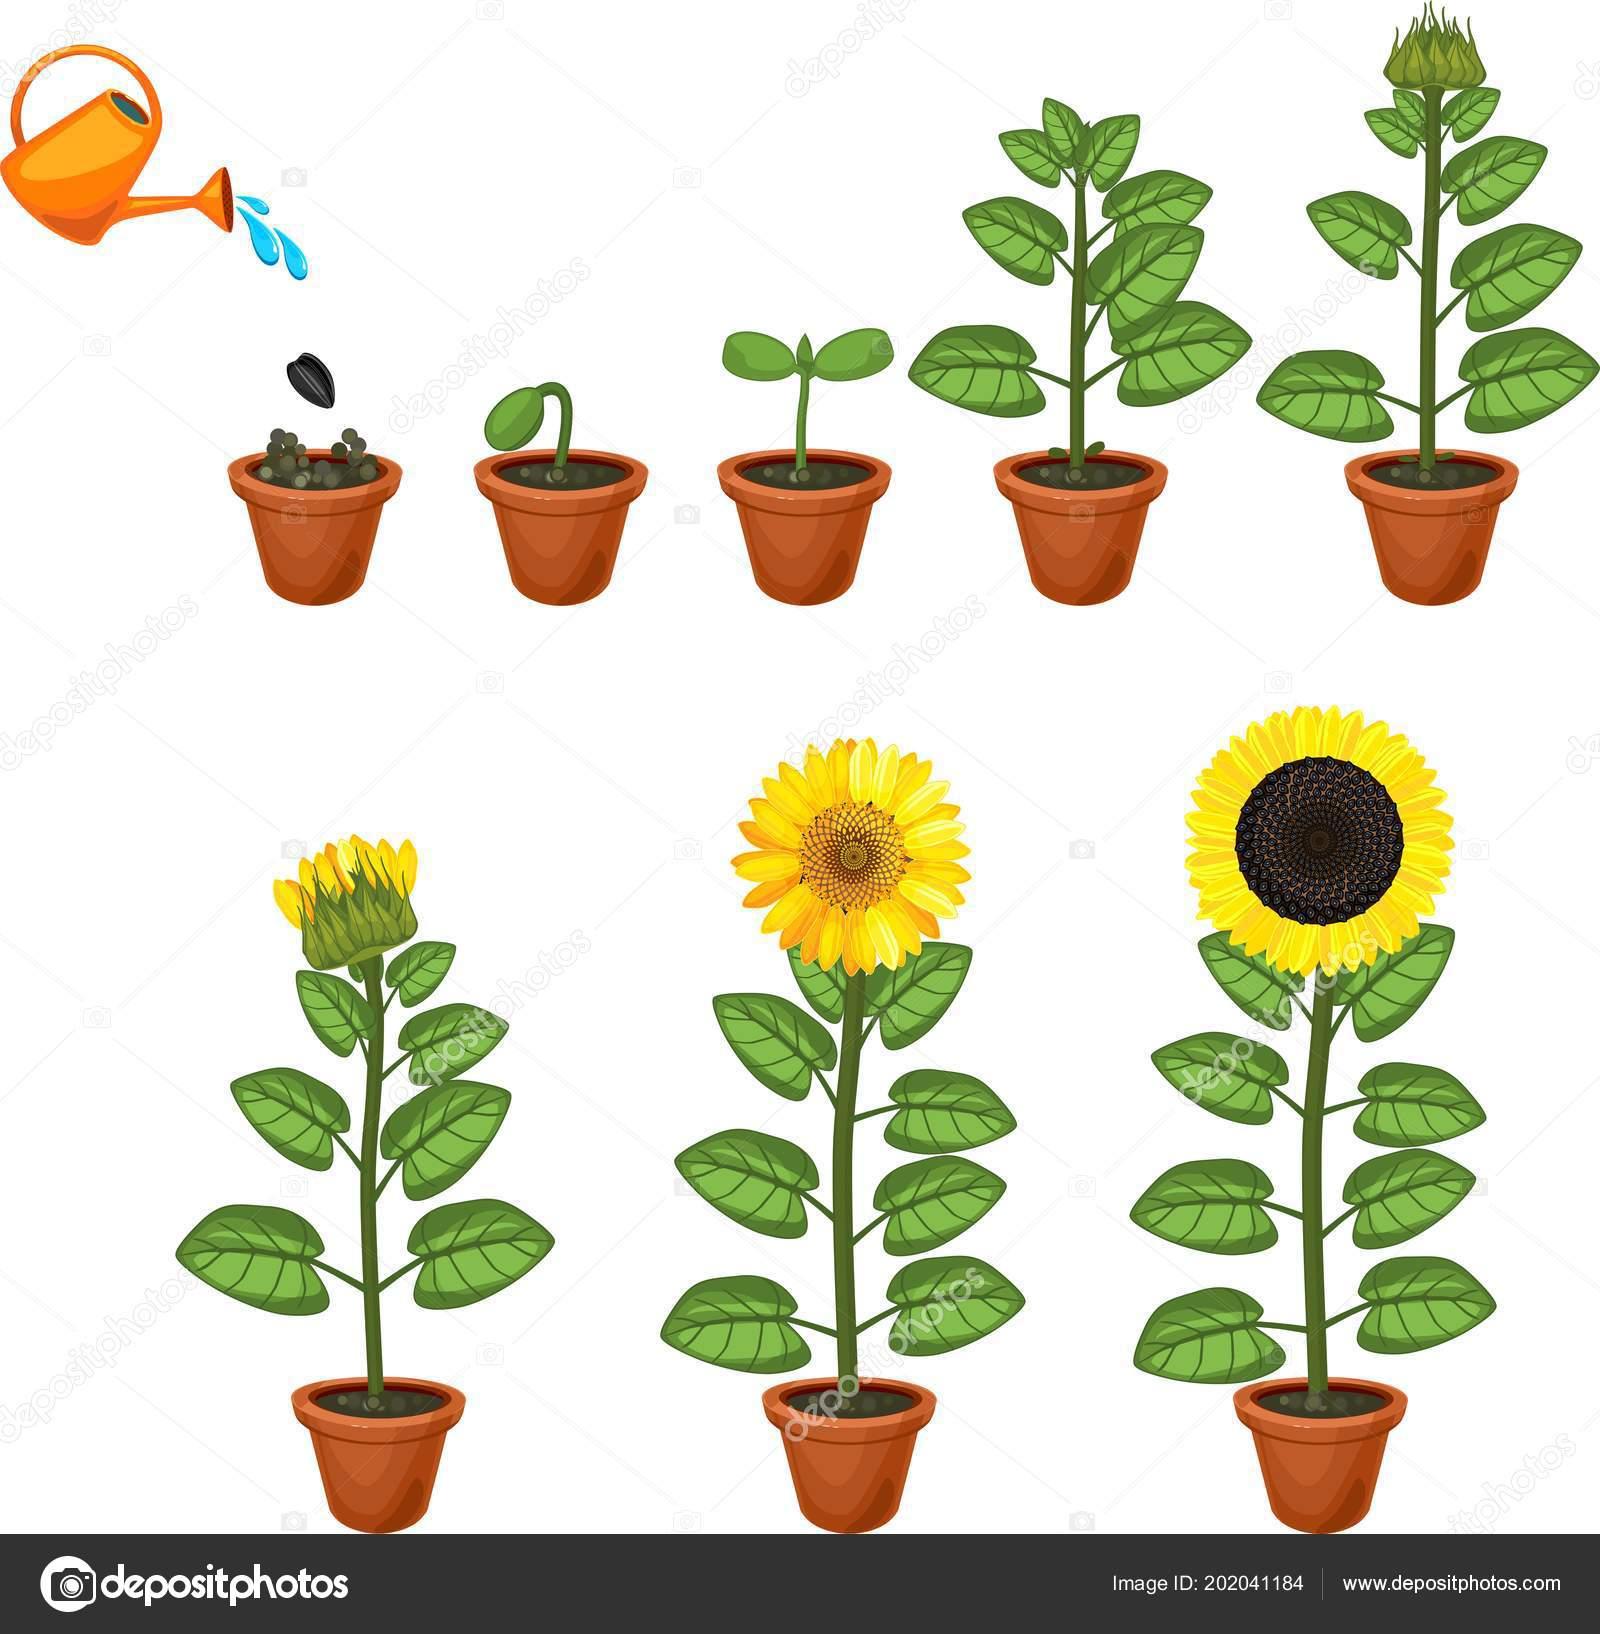 Life Cycle Sunflower Plant Pictures